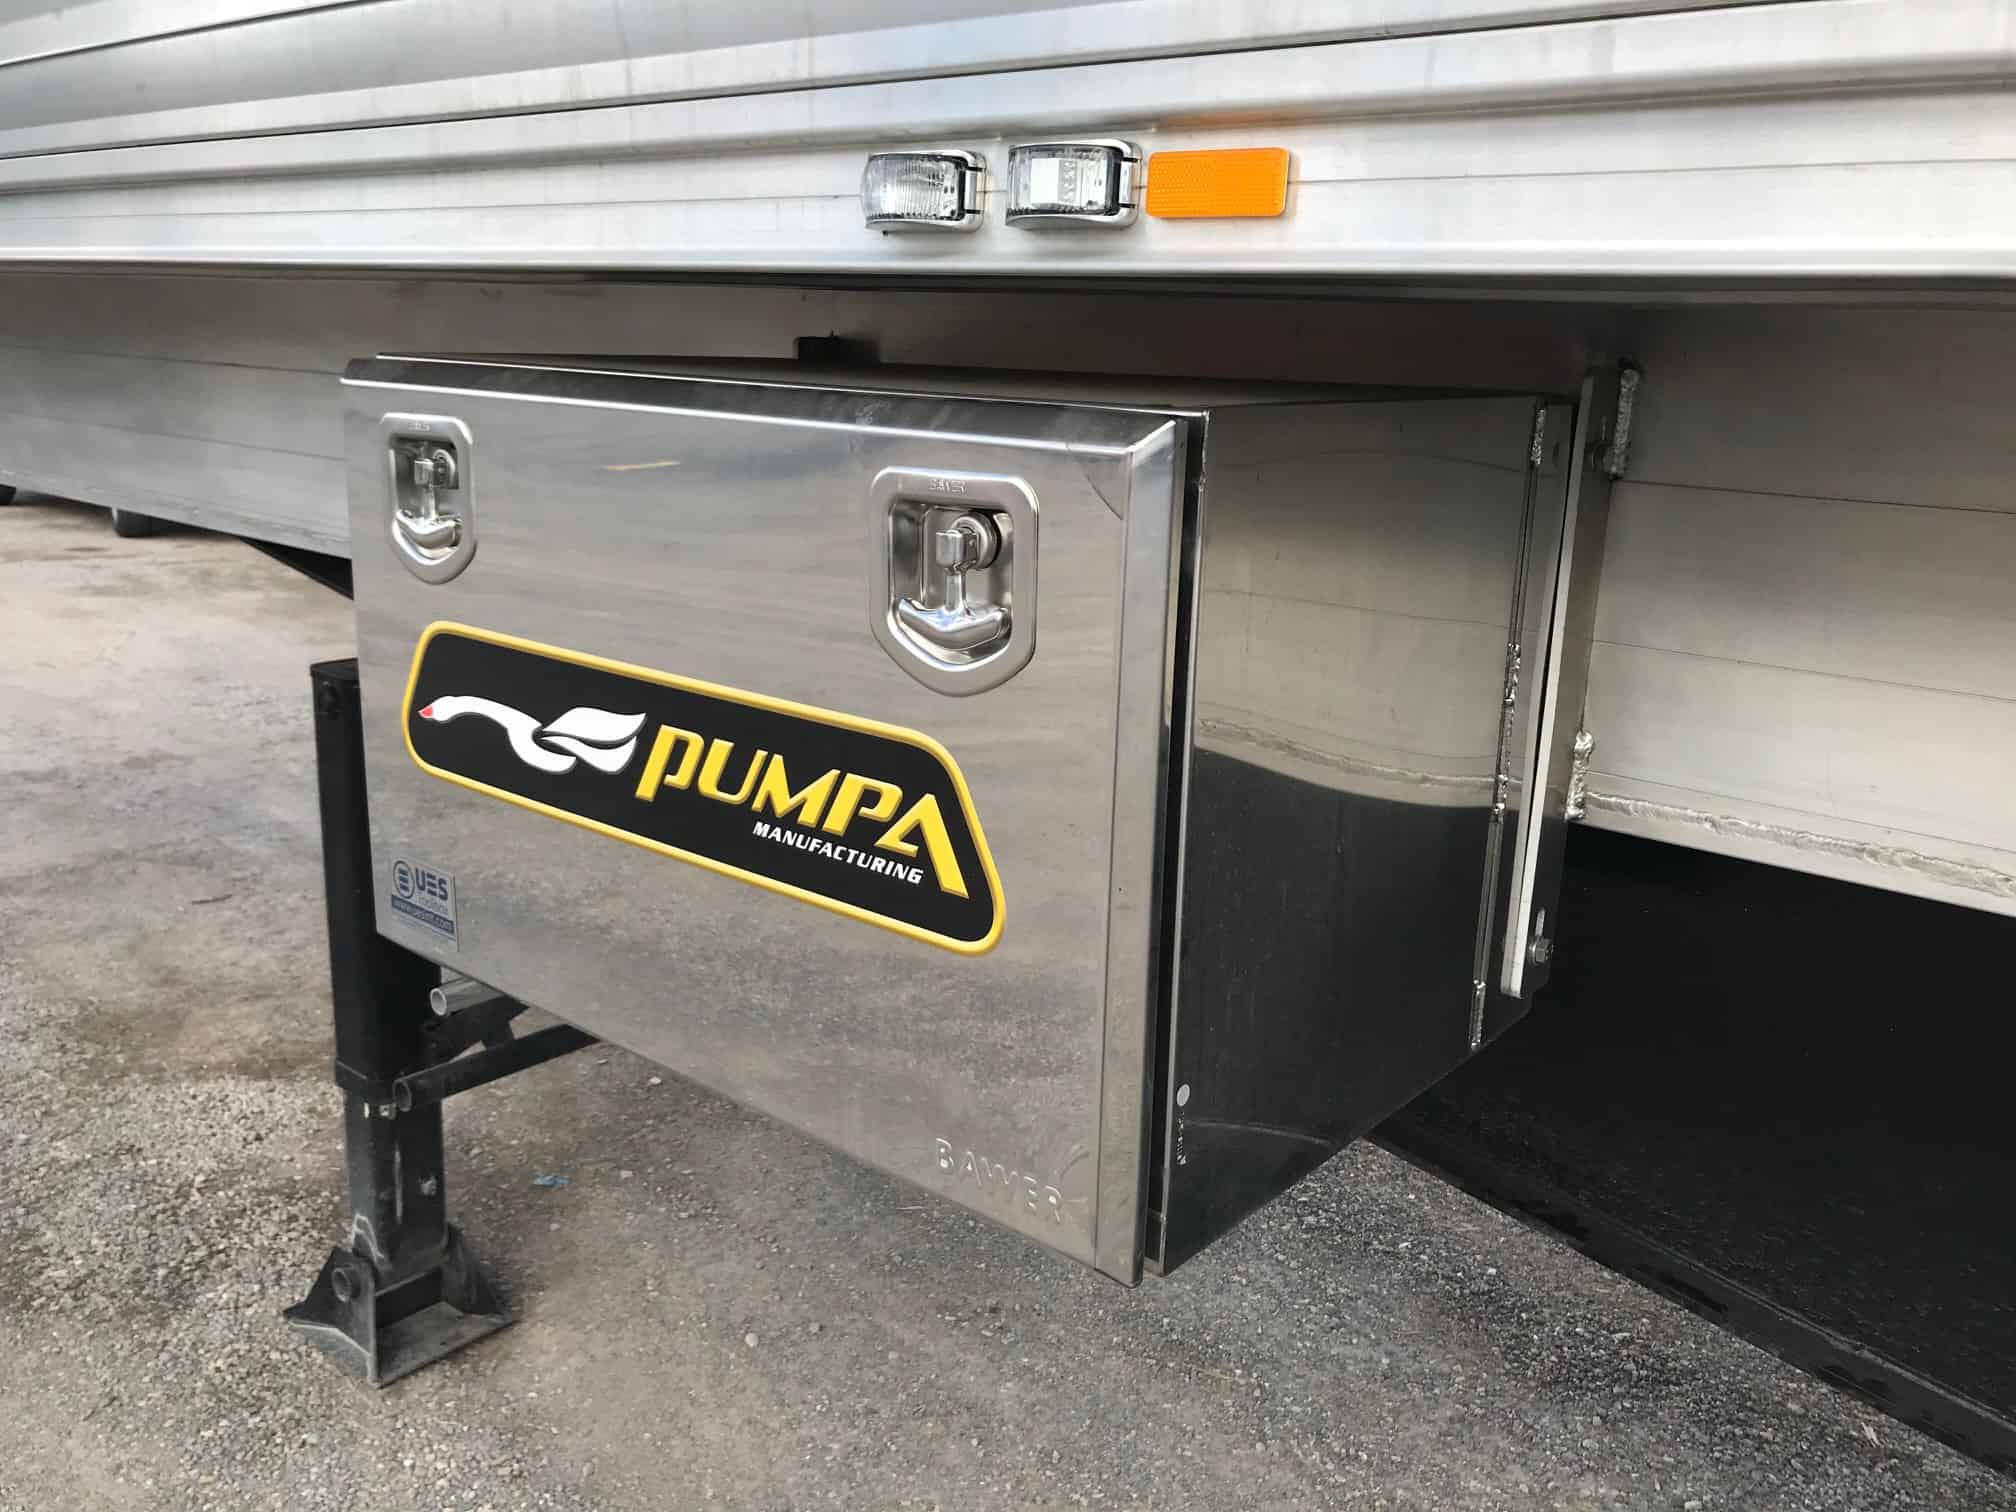 PUMPA Manufacturing Stainless Steel toolbox 800L x 500H x500W comes with 2x T-Locks